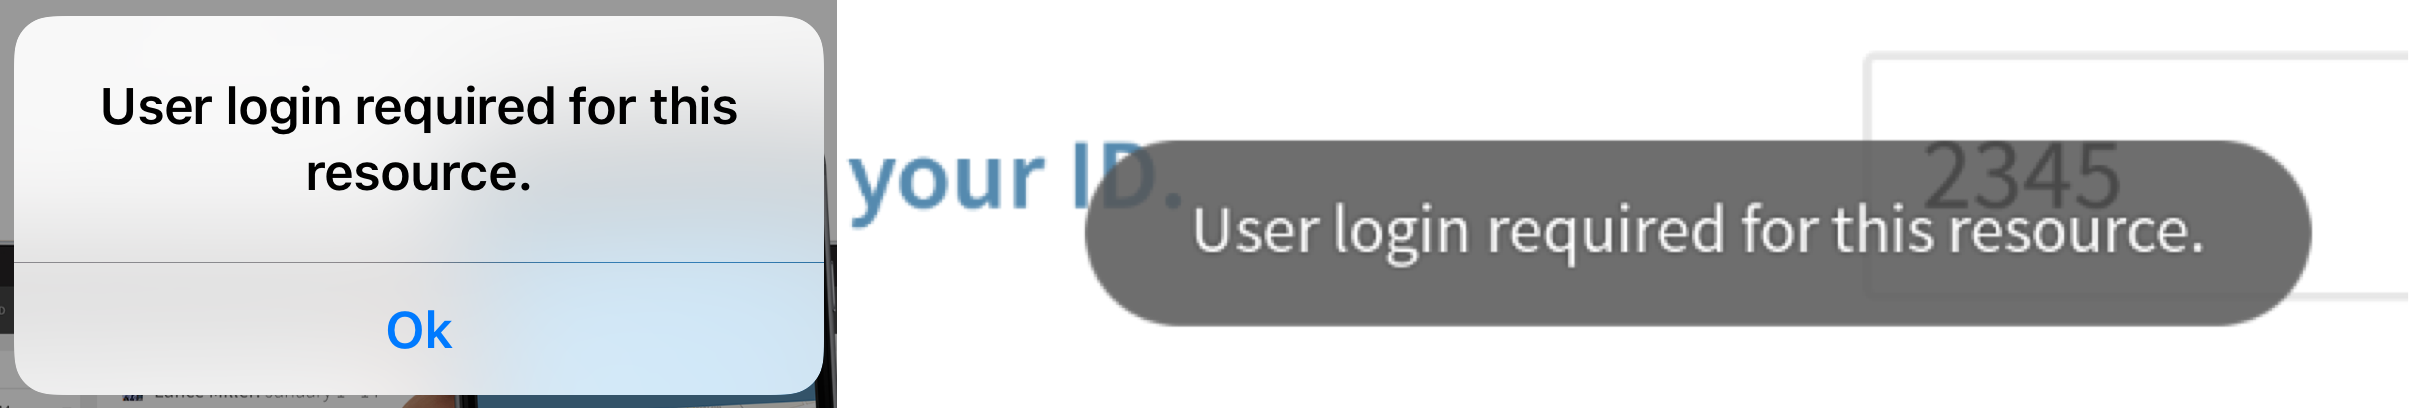 User login required for this resource